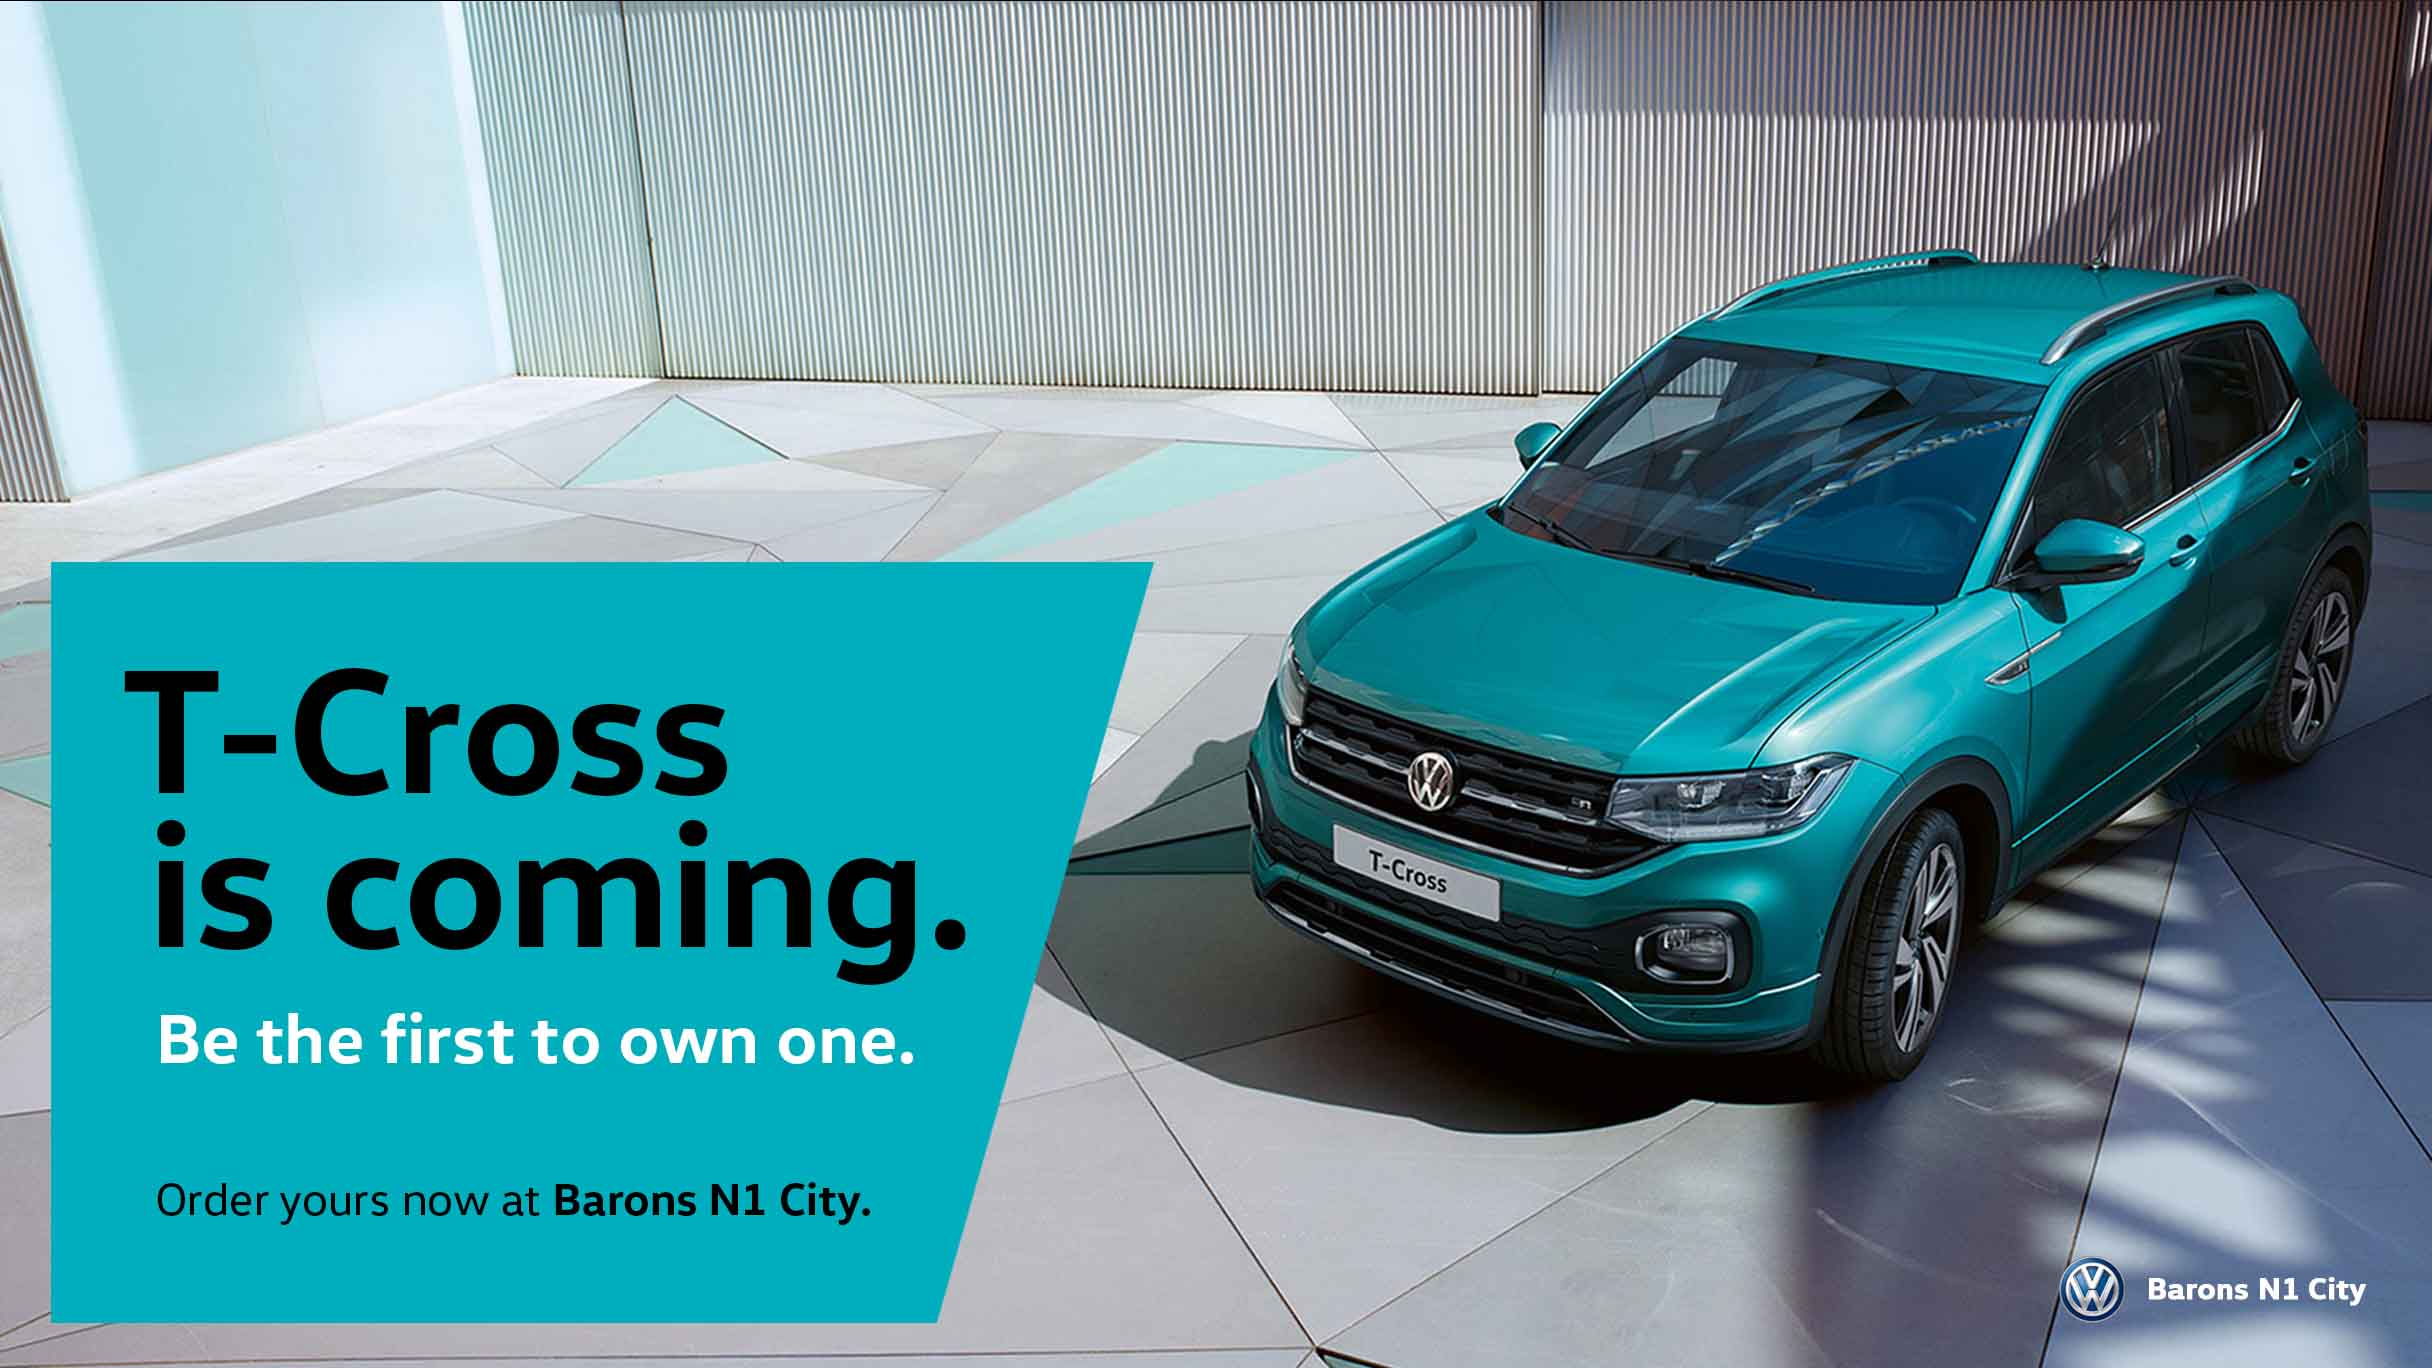 The VW T-Cross is coming to